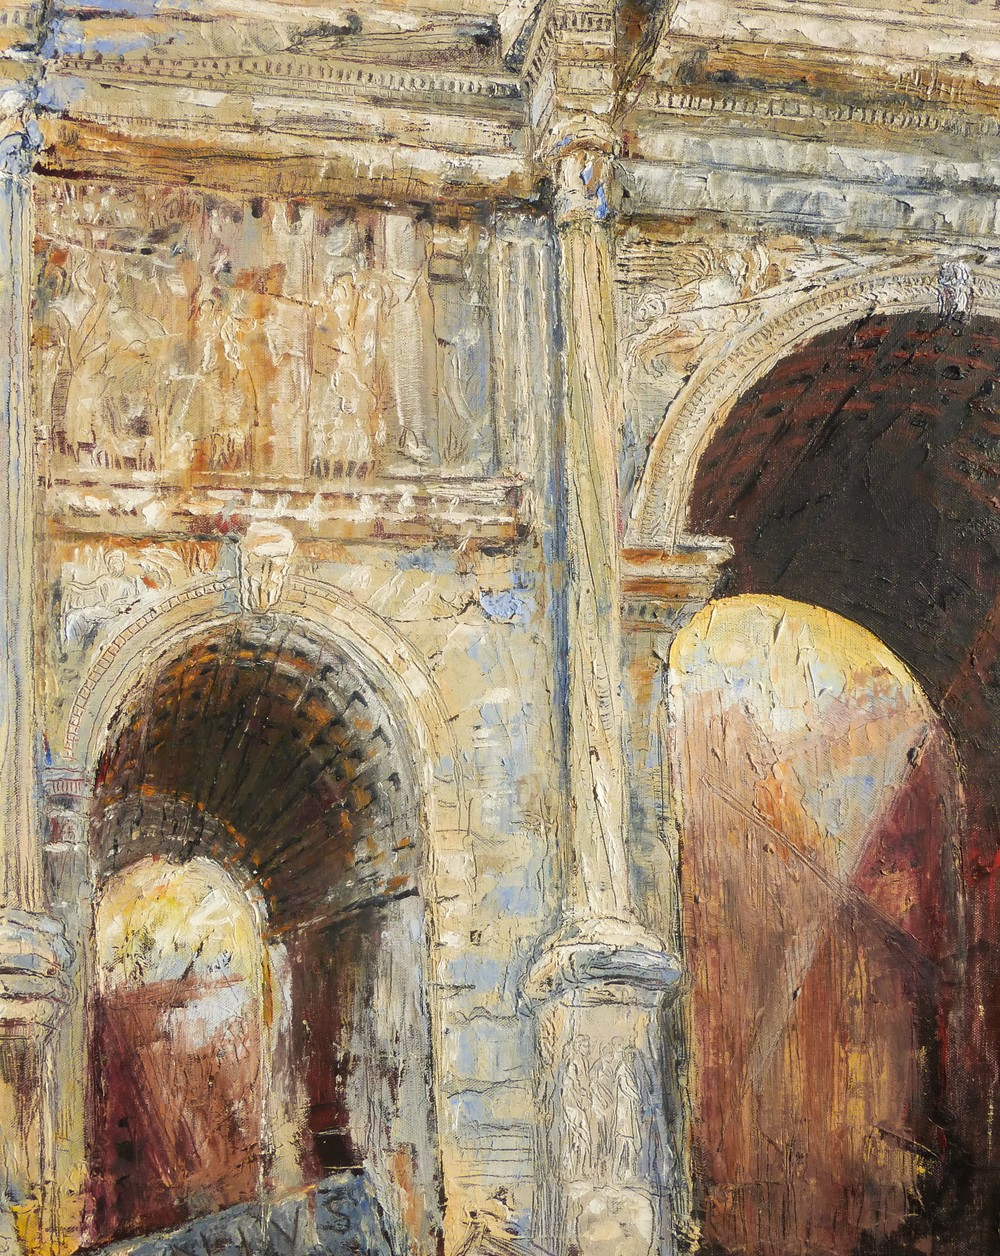 Arch of Septimius Severus, Forum, Rome, Oil on canvas, 65x54cm